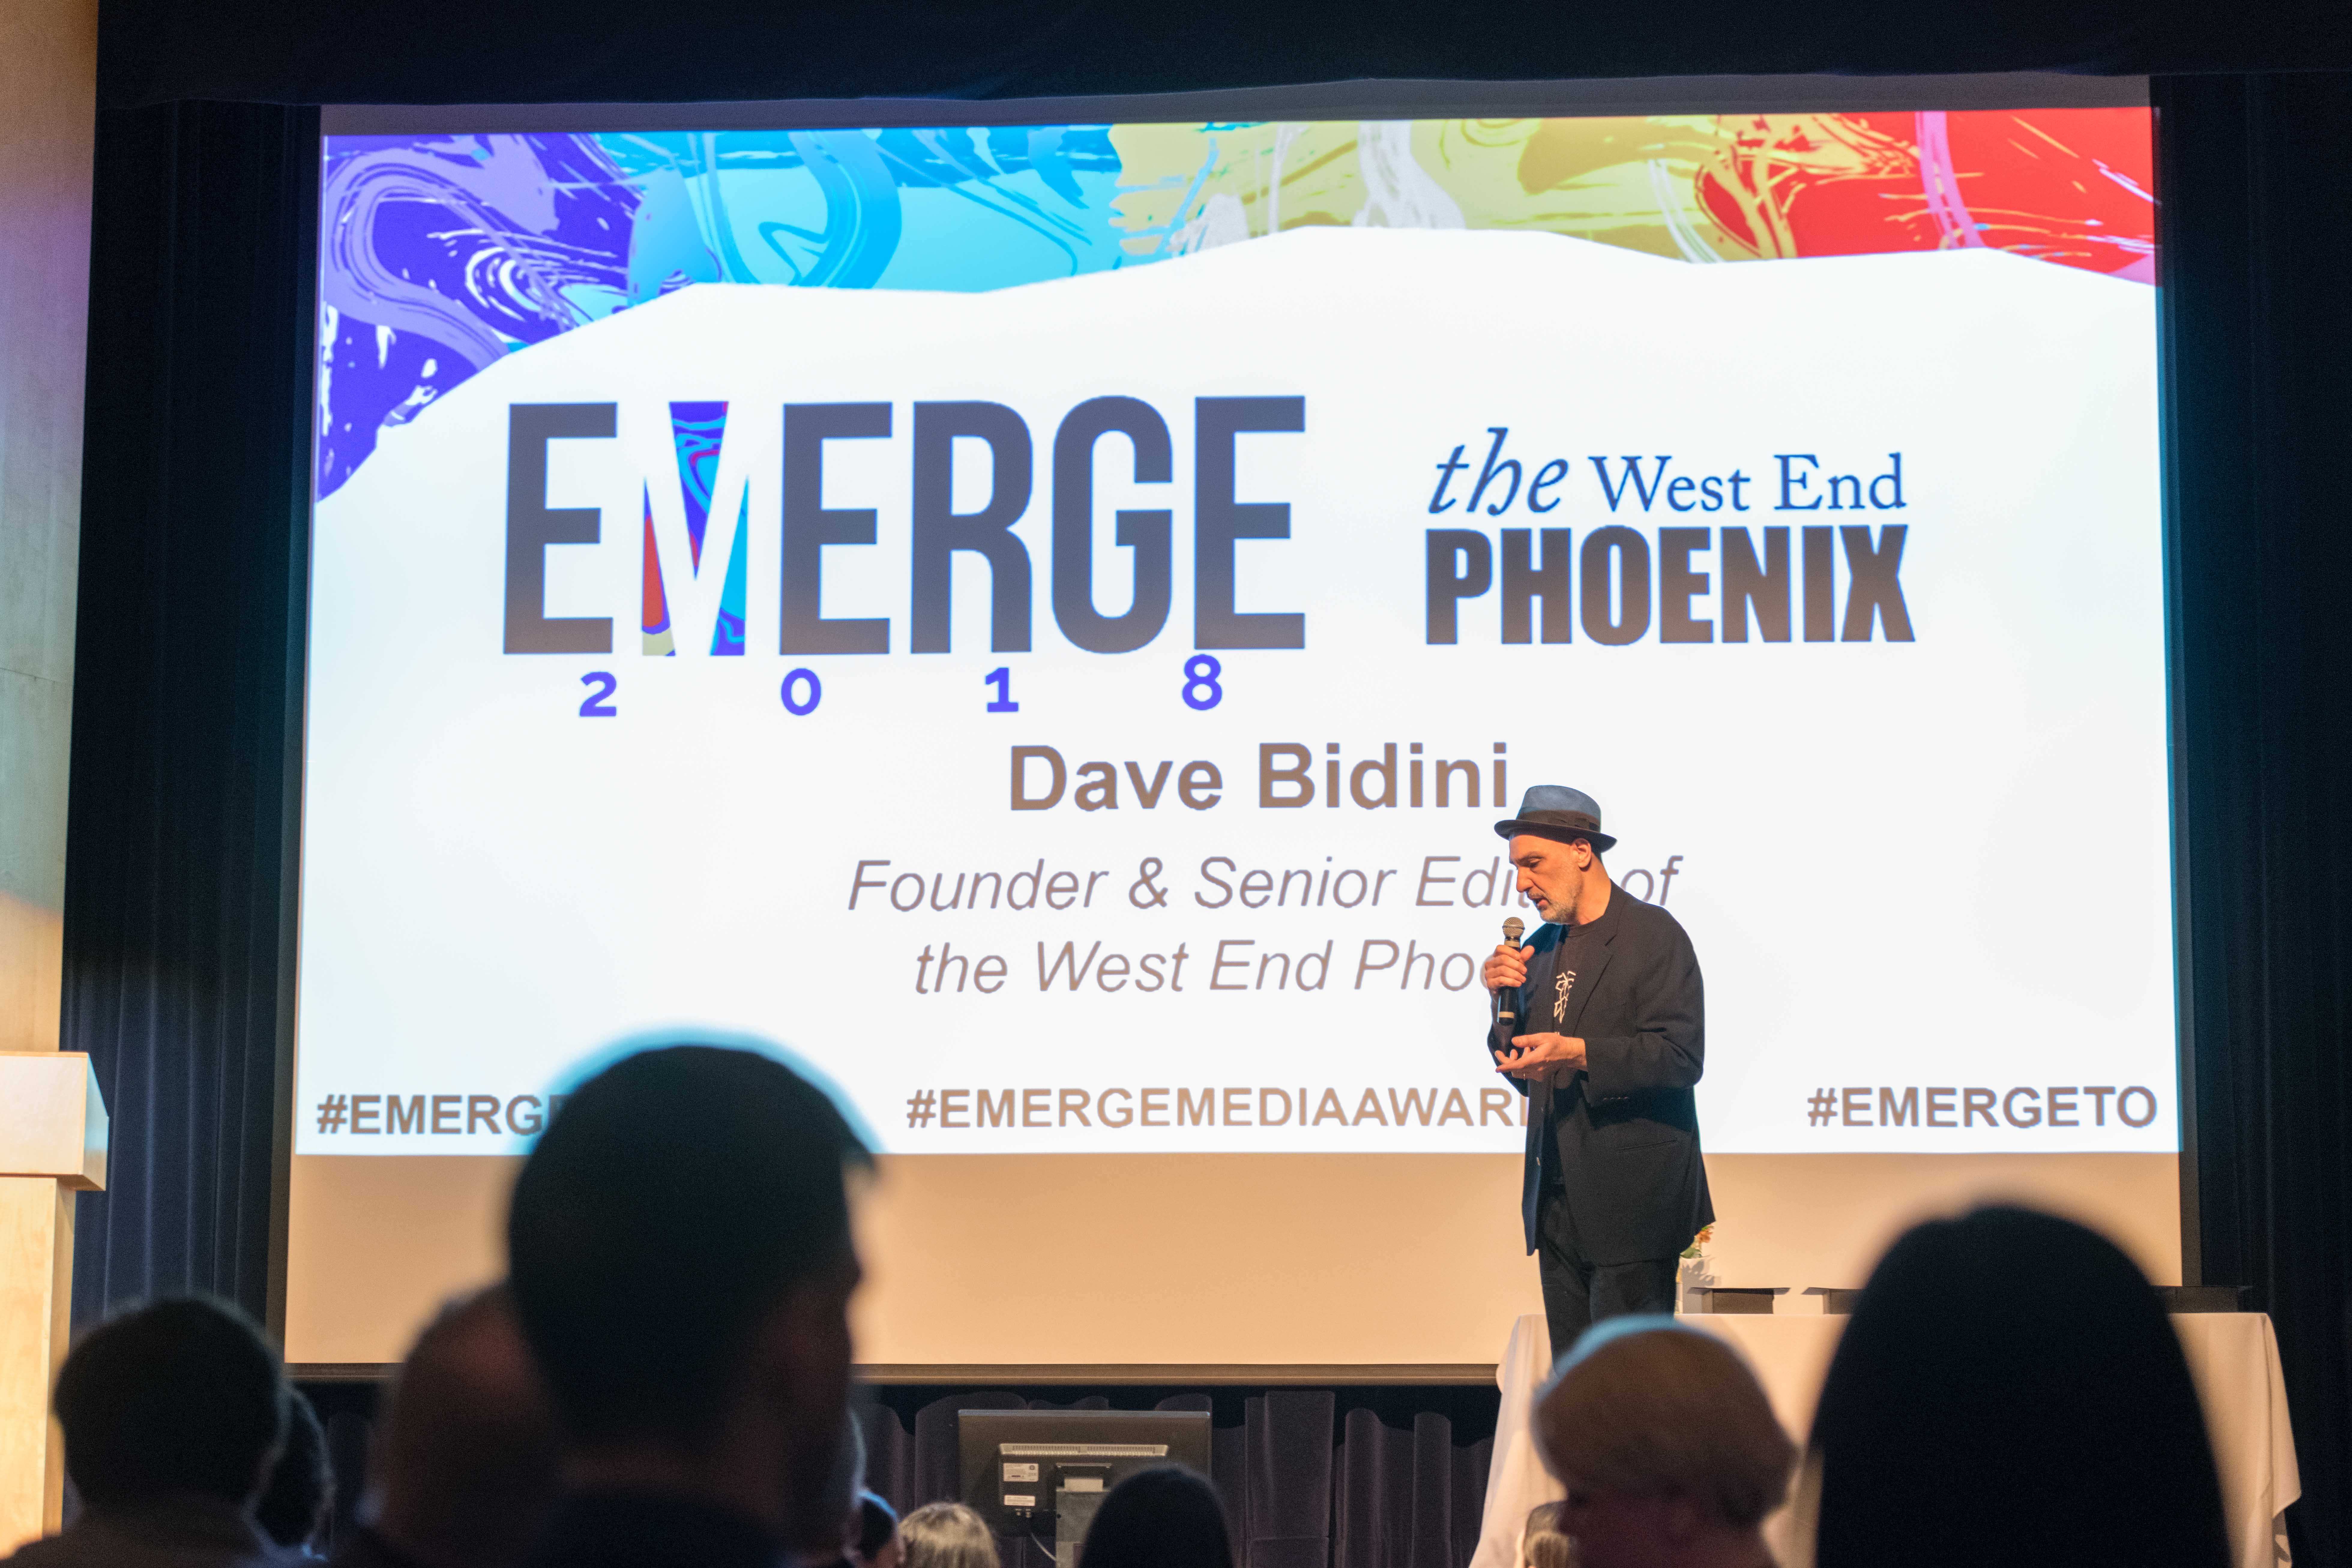 Dave Bidini addresses the crowd